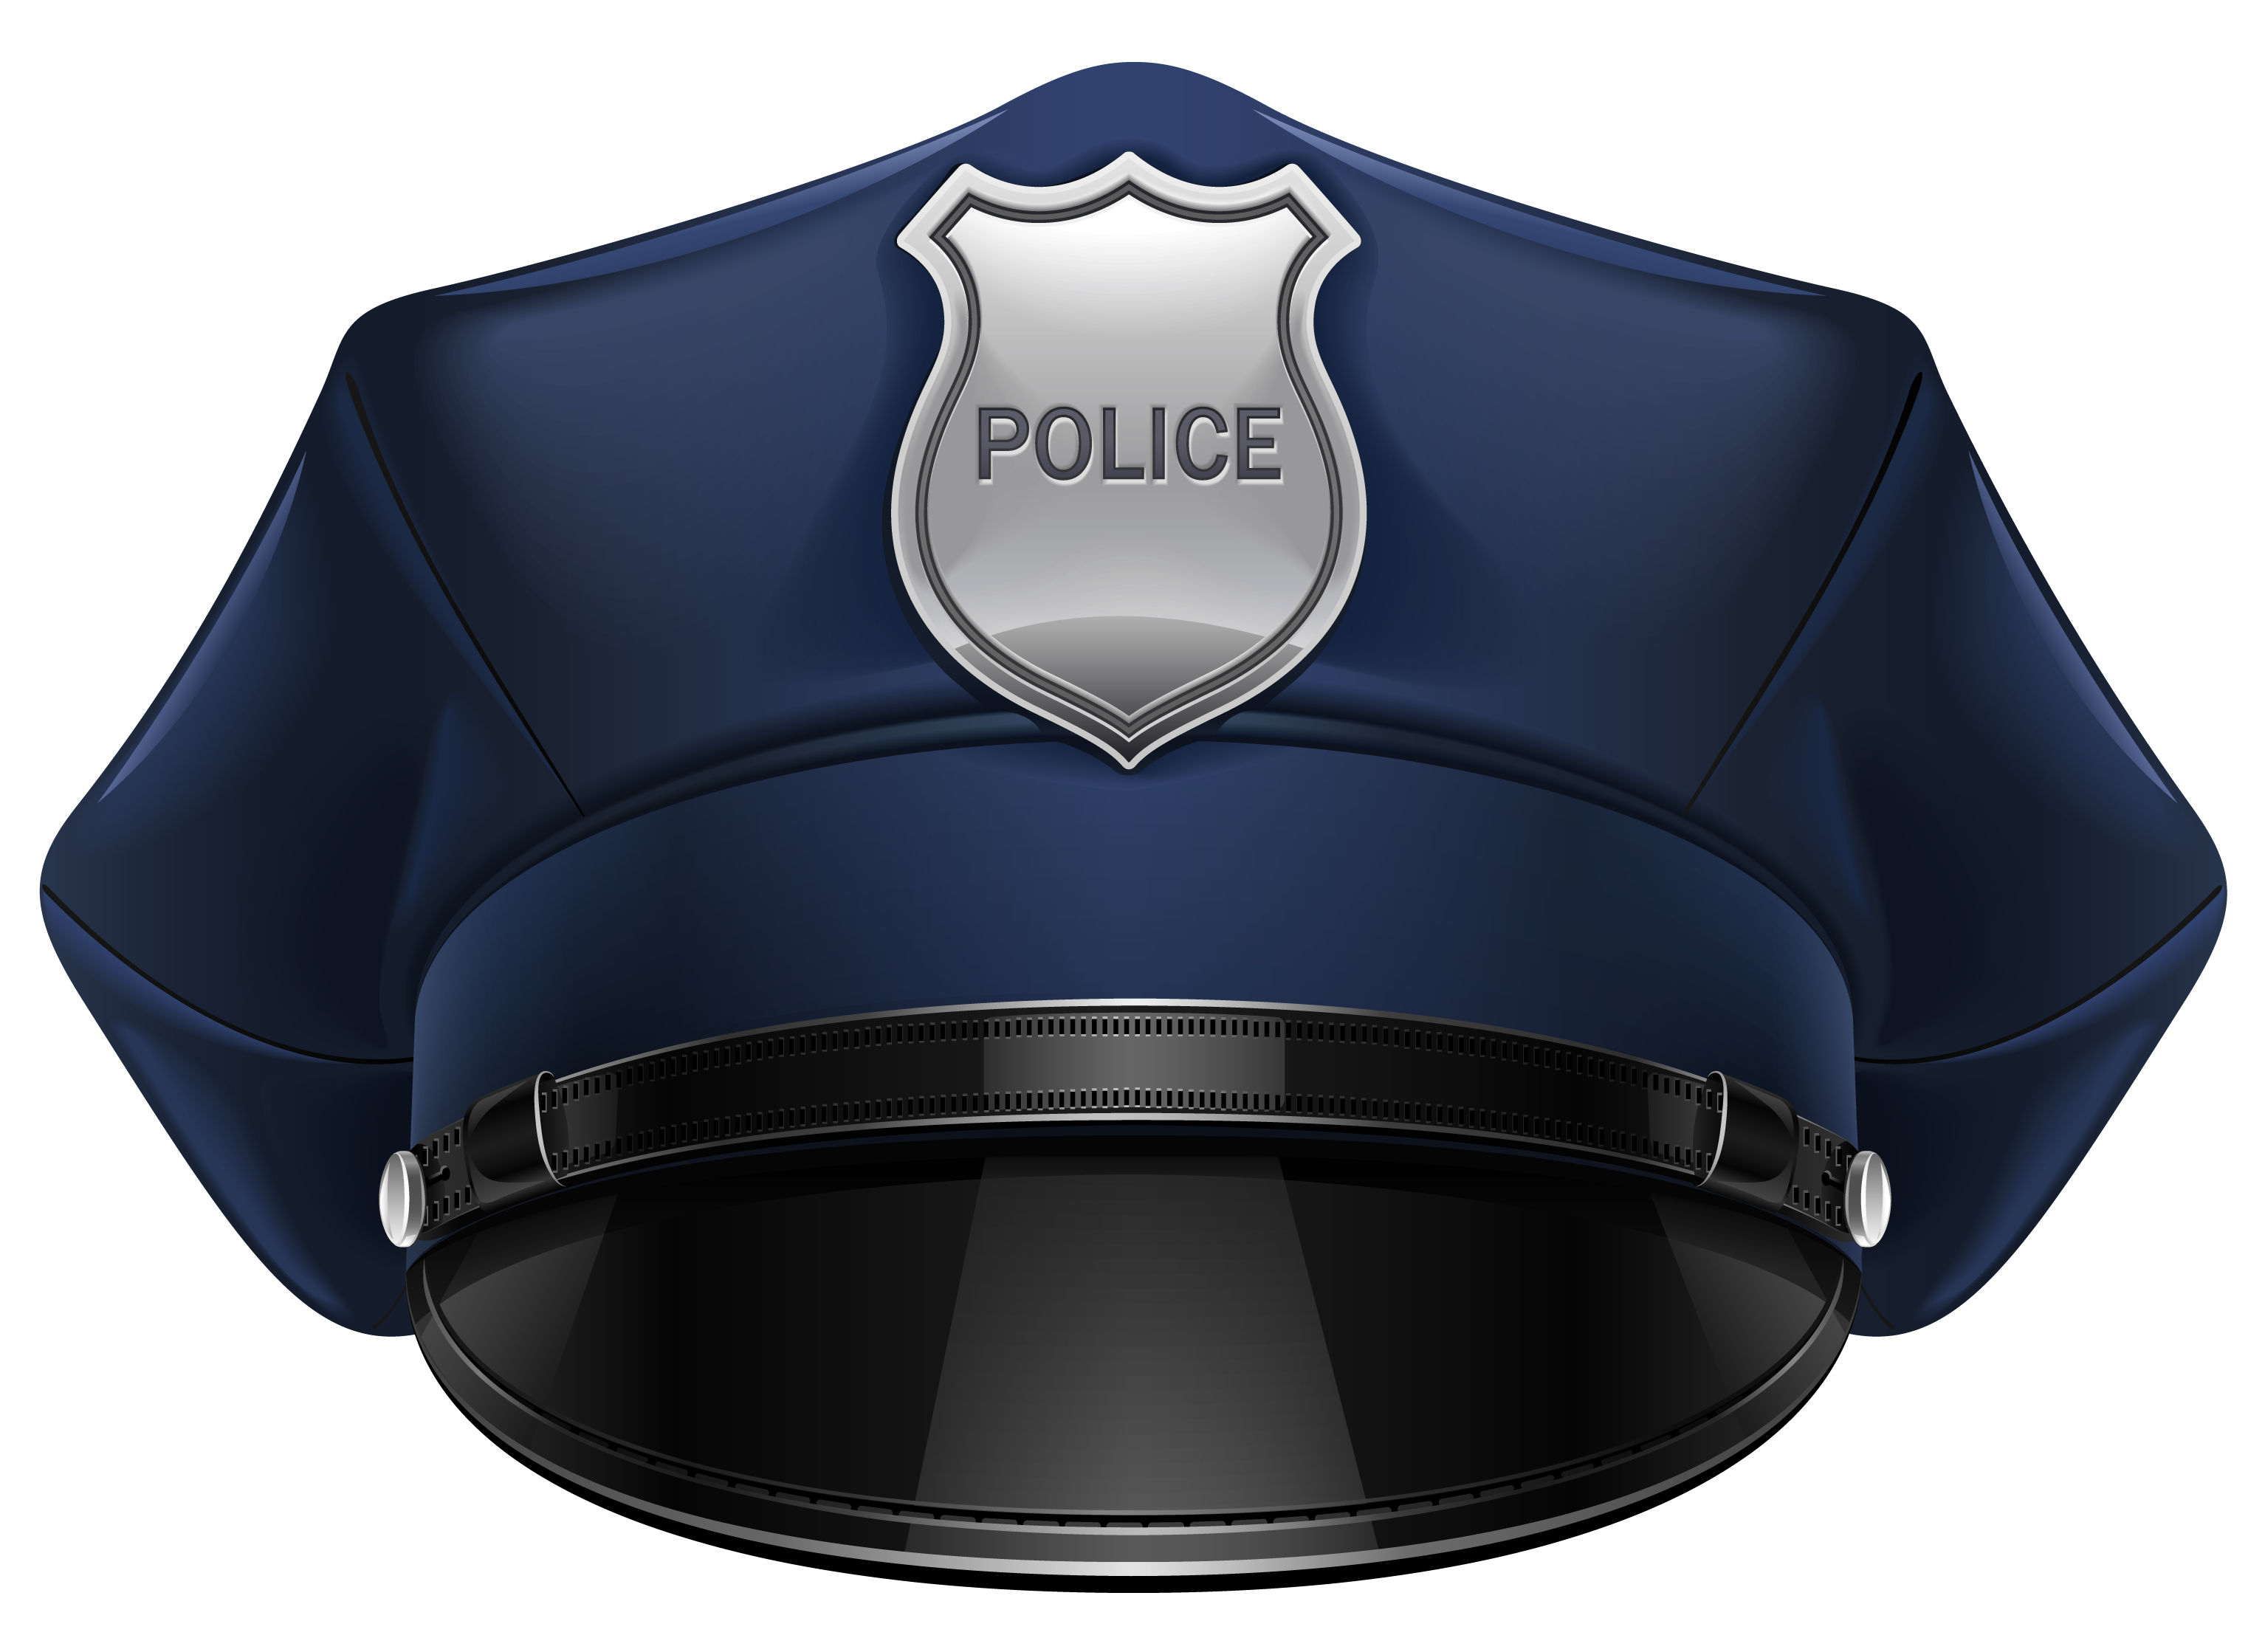 Light Blue clipart police equipment Police Saw Clipart Fire Police